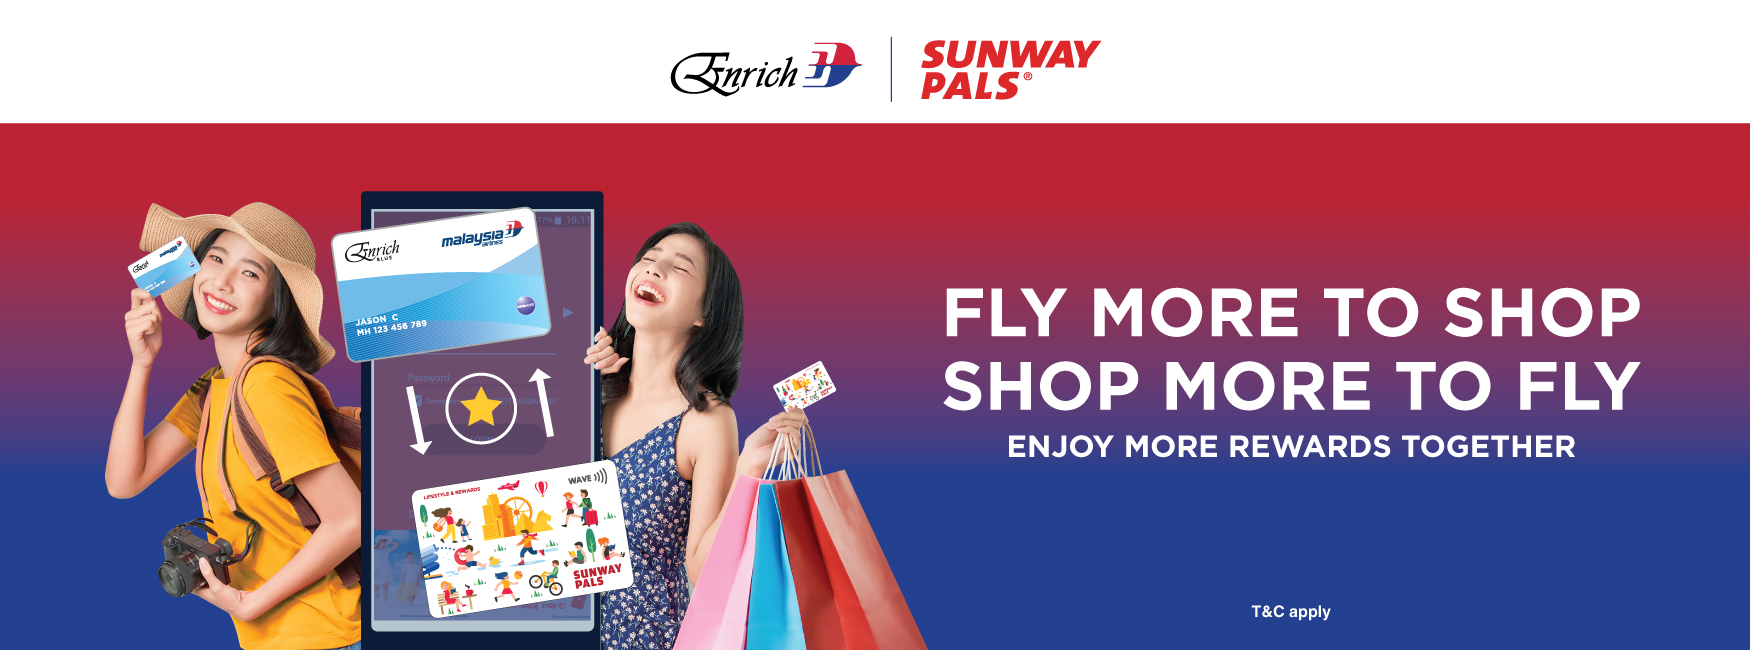 Enrich Miles and Sunway Pals Points Exchange